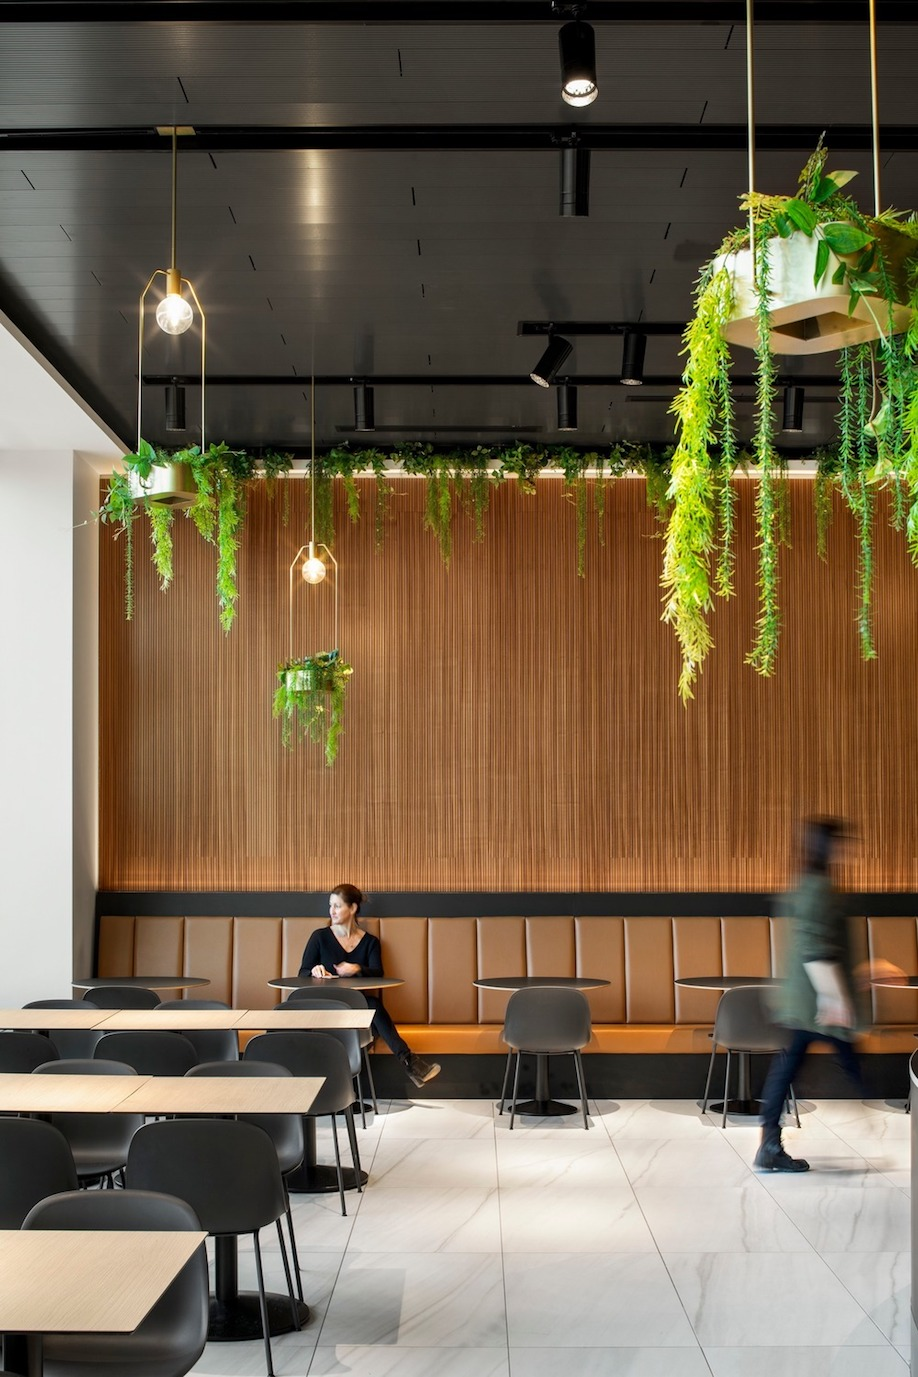 Cuisine Design La Cuisine In Quebec Combines Food Court With Upscale Food Hall